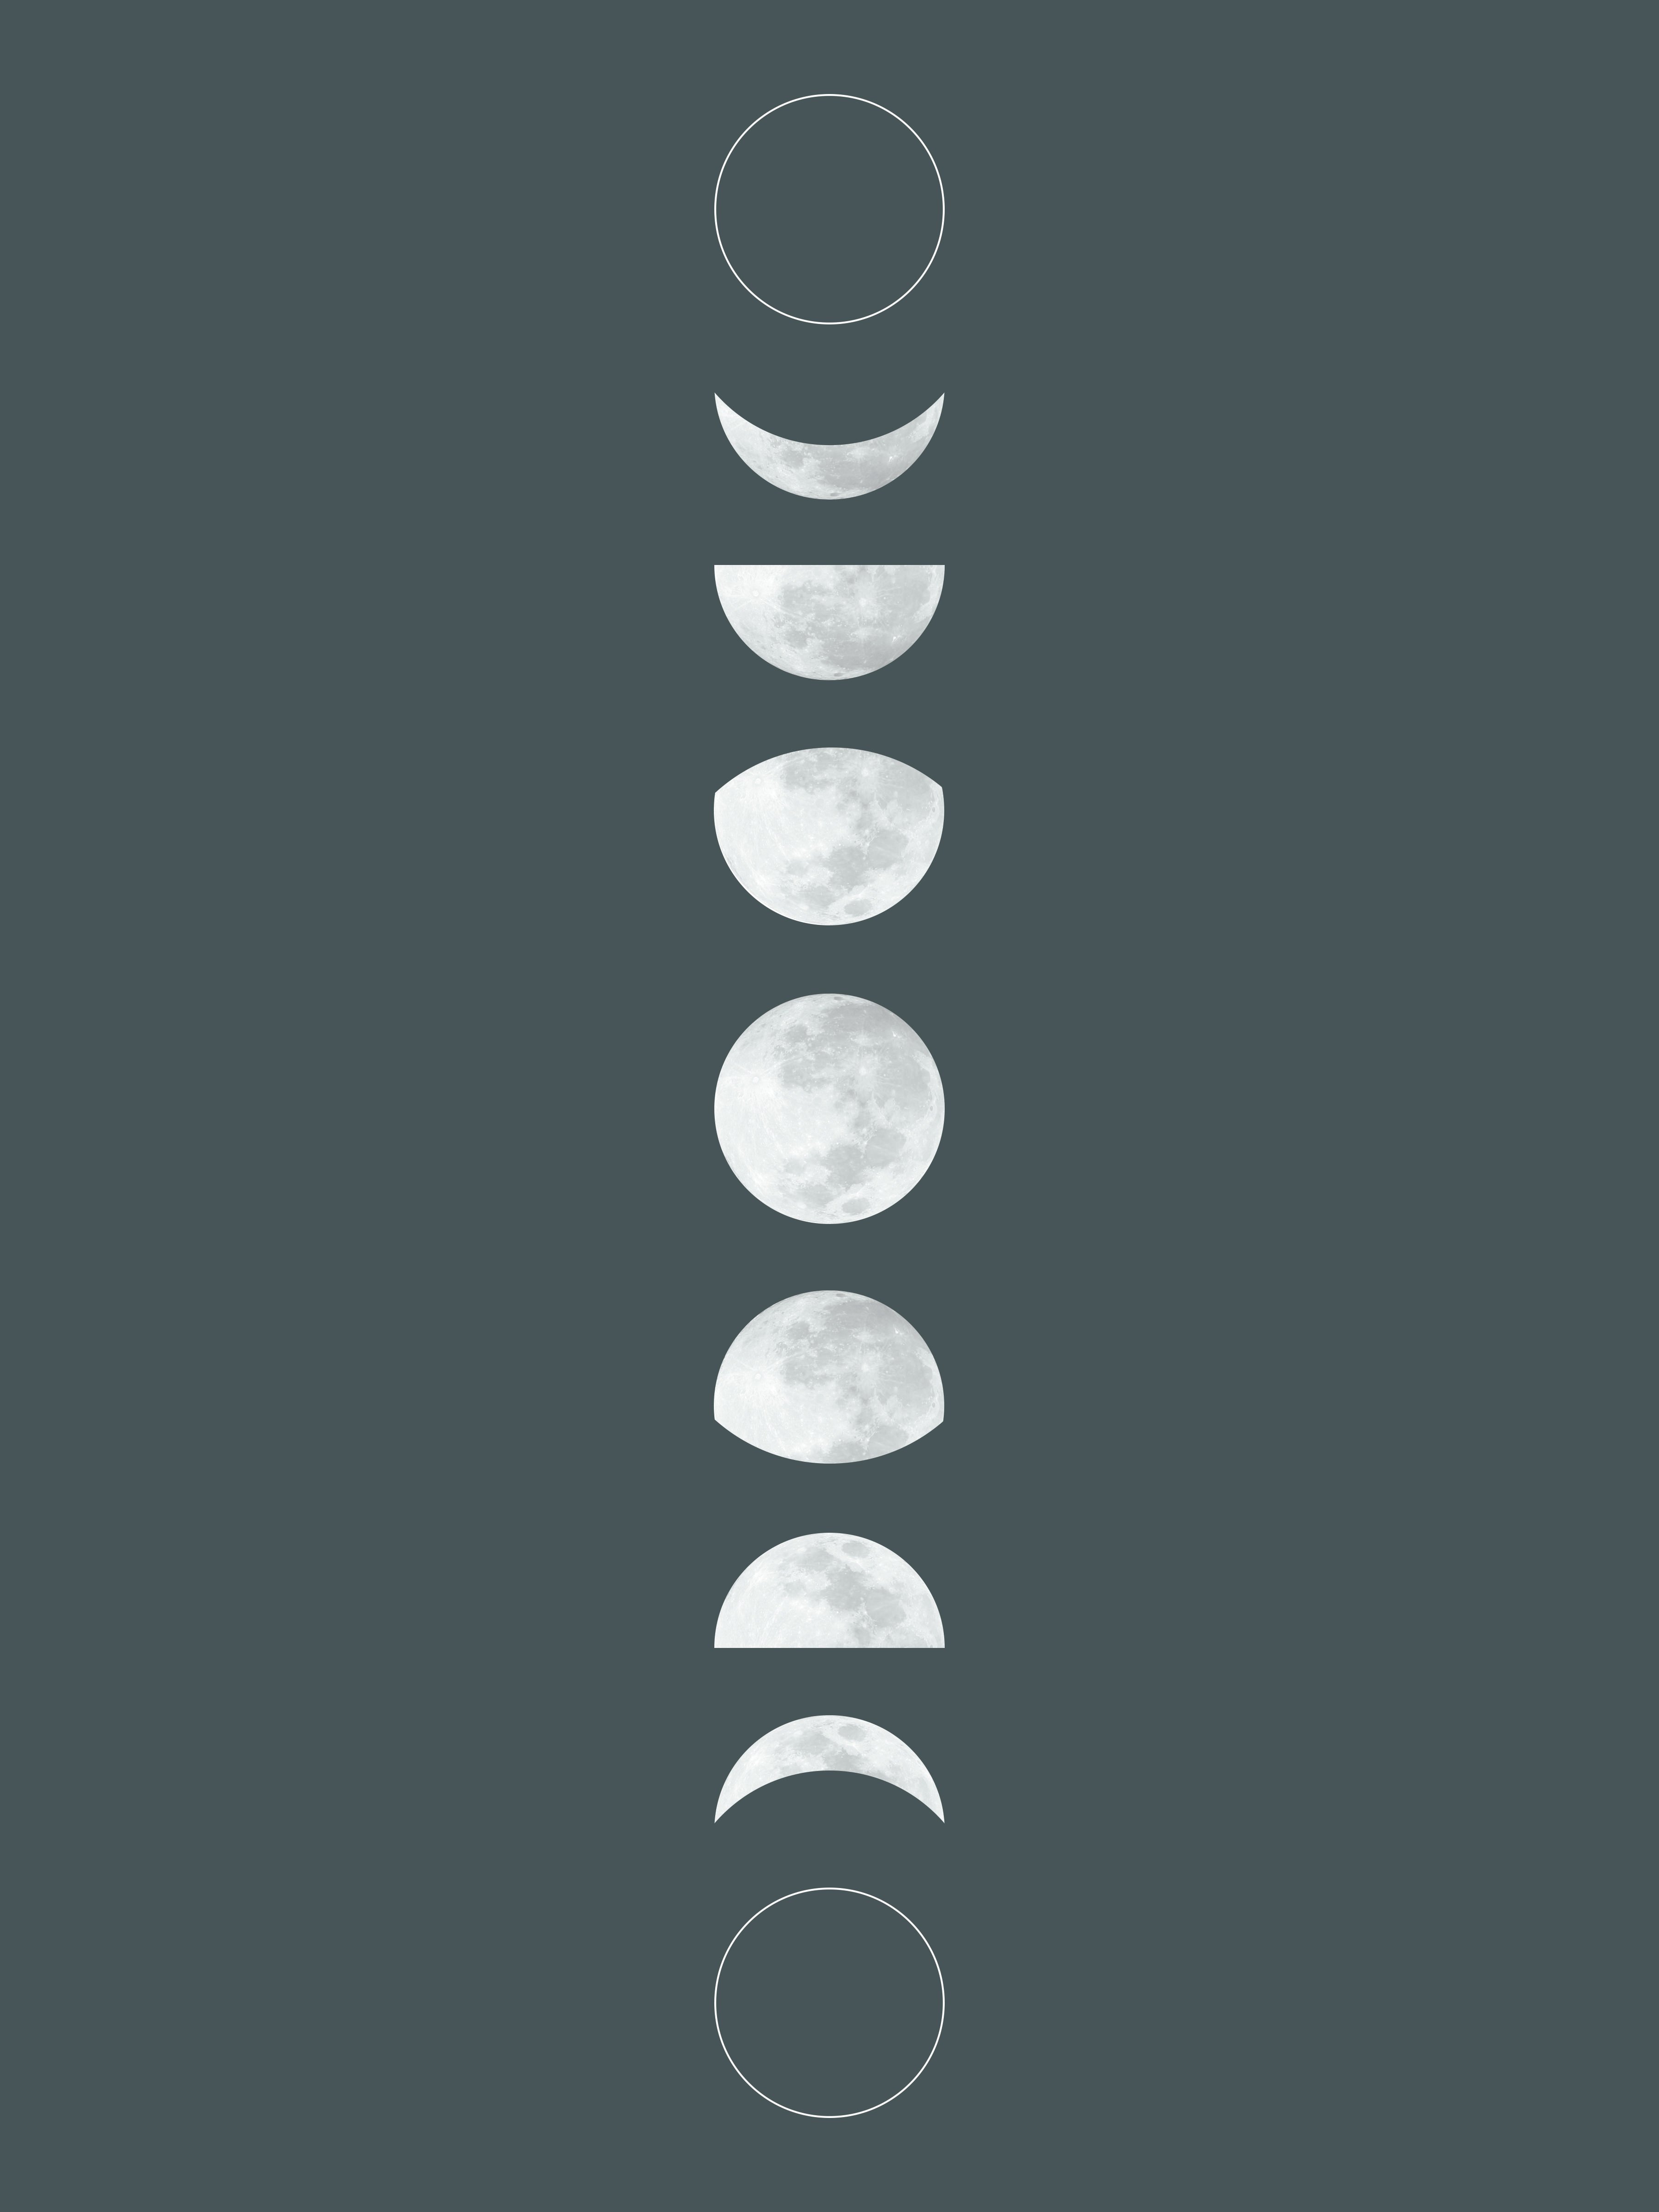 graphic about Moon Phases Printable referred to as The Nest: No cost printable moon step artwork and routine